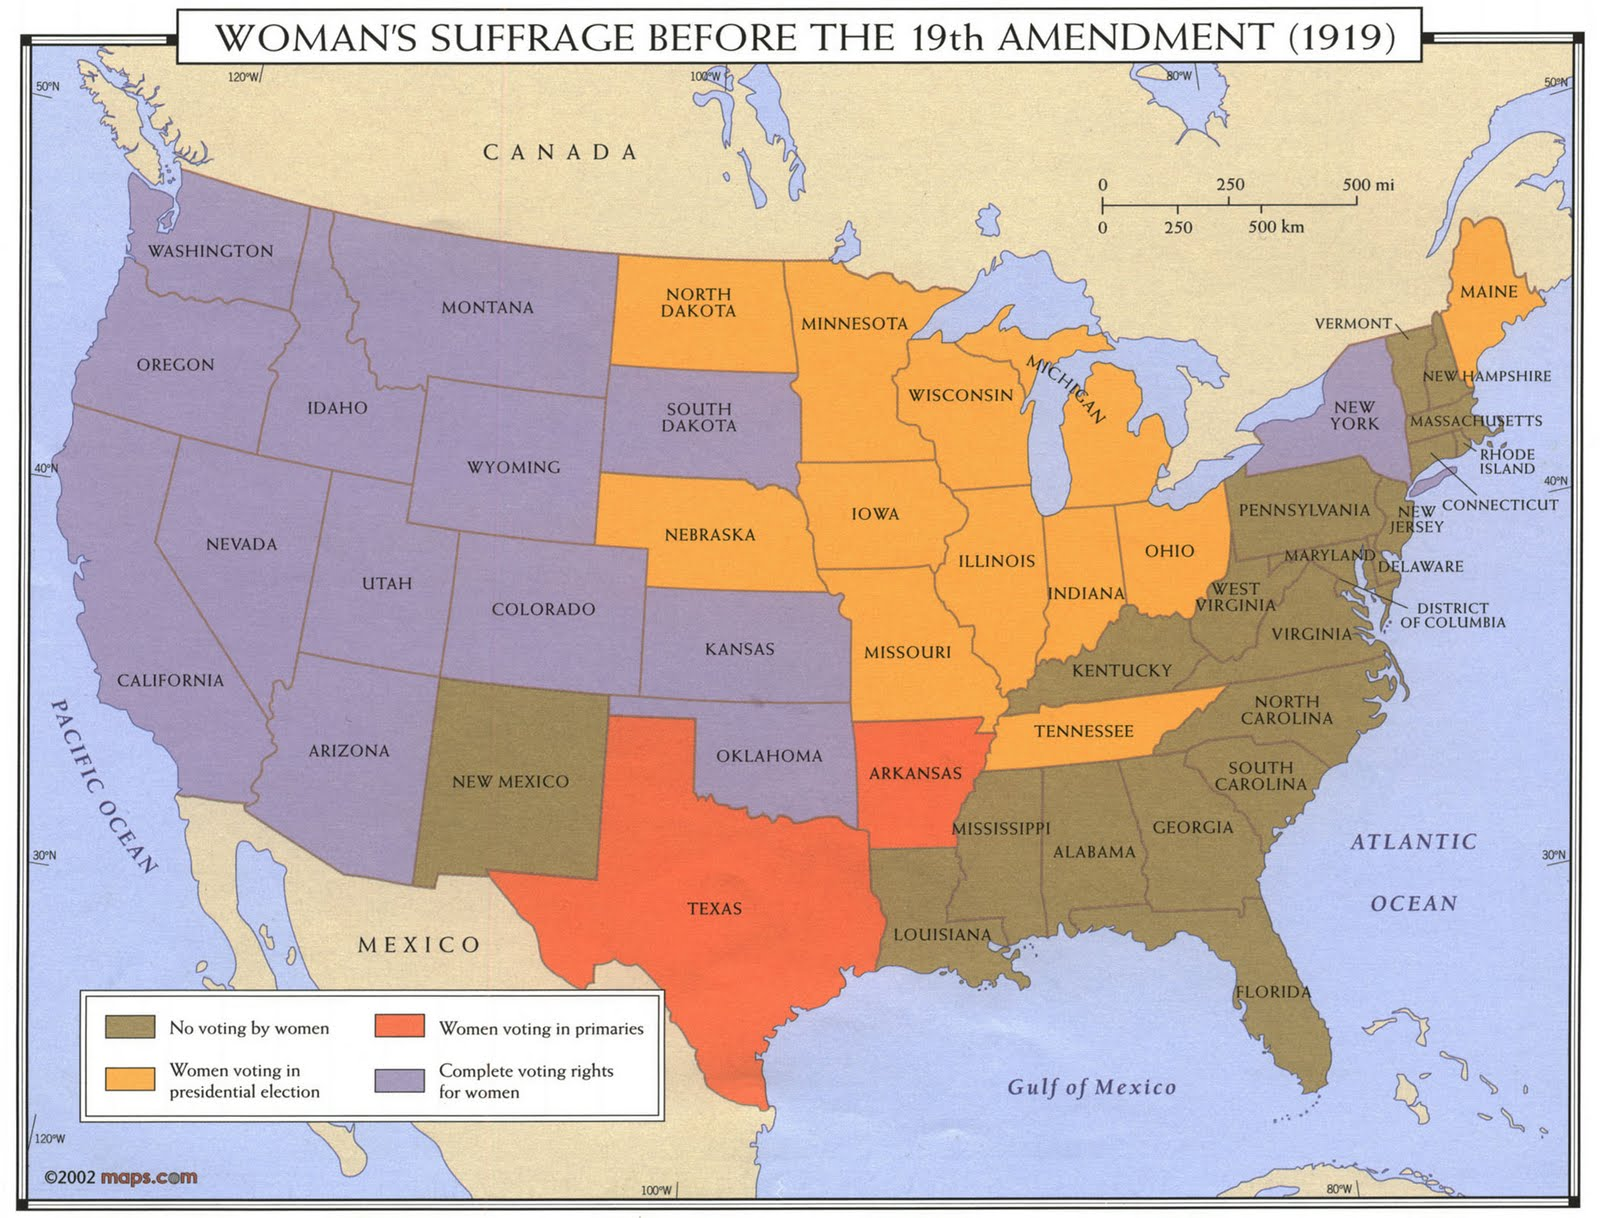 Women   suffrage maps from ball state university libraries mark th amendment anniversary also gis research and map collection rh bsumapsspot